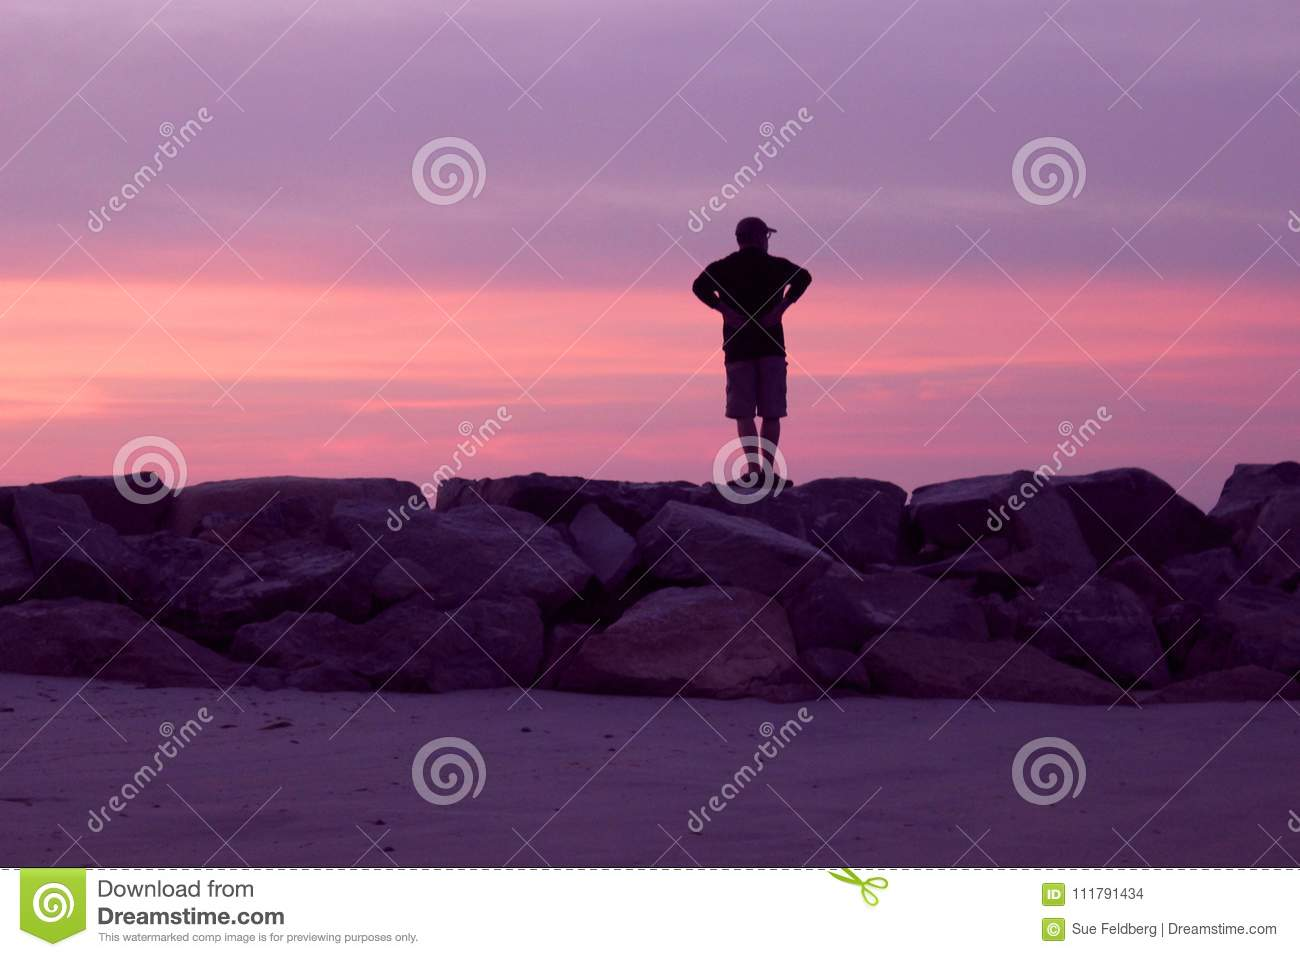 Man Watching a Pink and Violet Sunset at the Beach